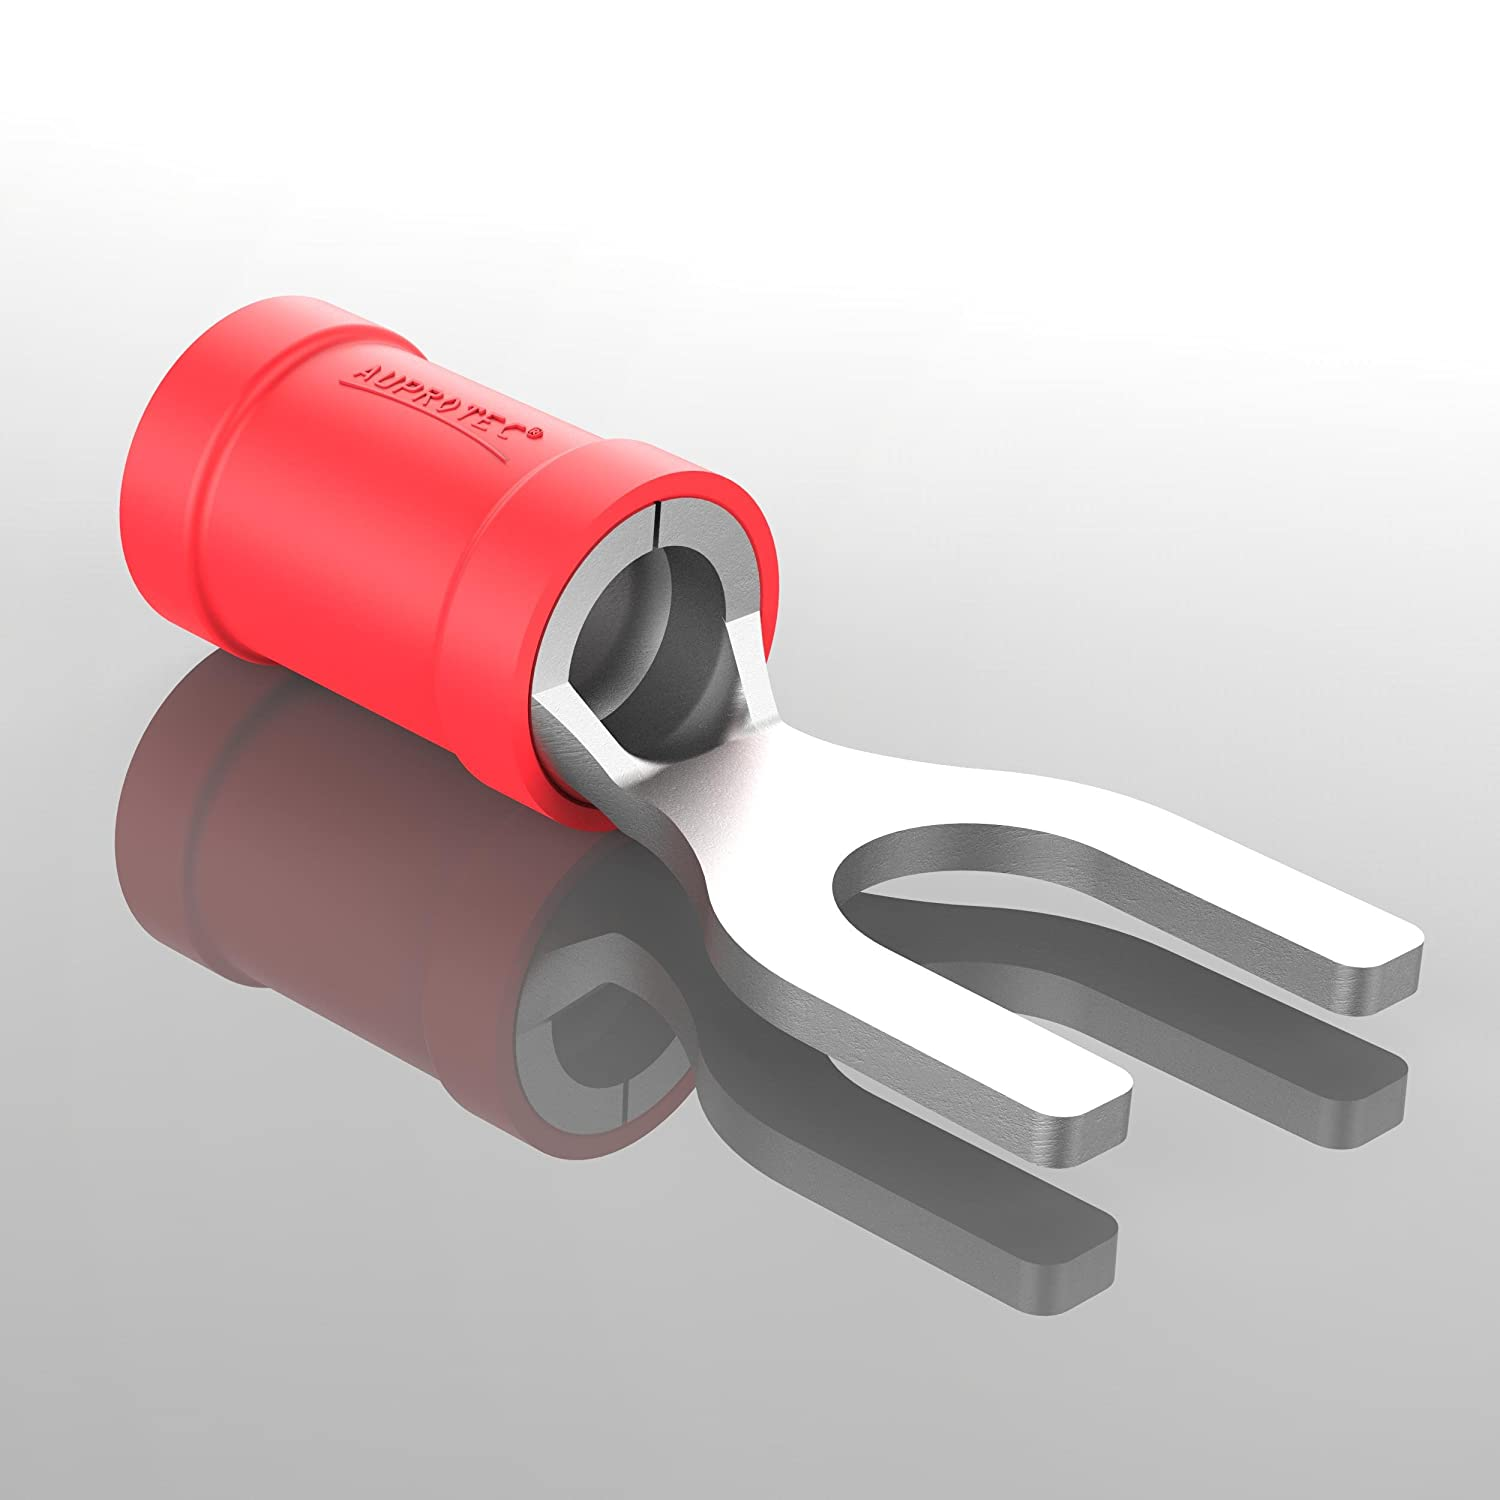 AUPROTEC 100x Fork Connectors 0.5-1.5 mm/² red AWG 22-16 hole-/Ø M4 SV PVC semi-insulated Electrical Crimp Connector tinned copper Spade Terminals